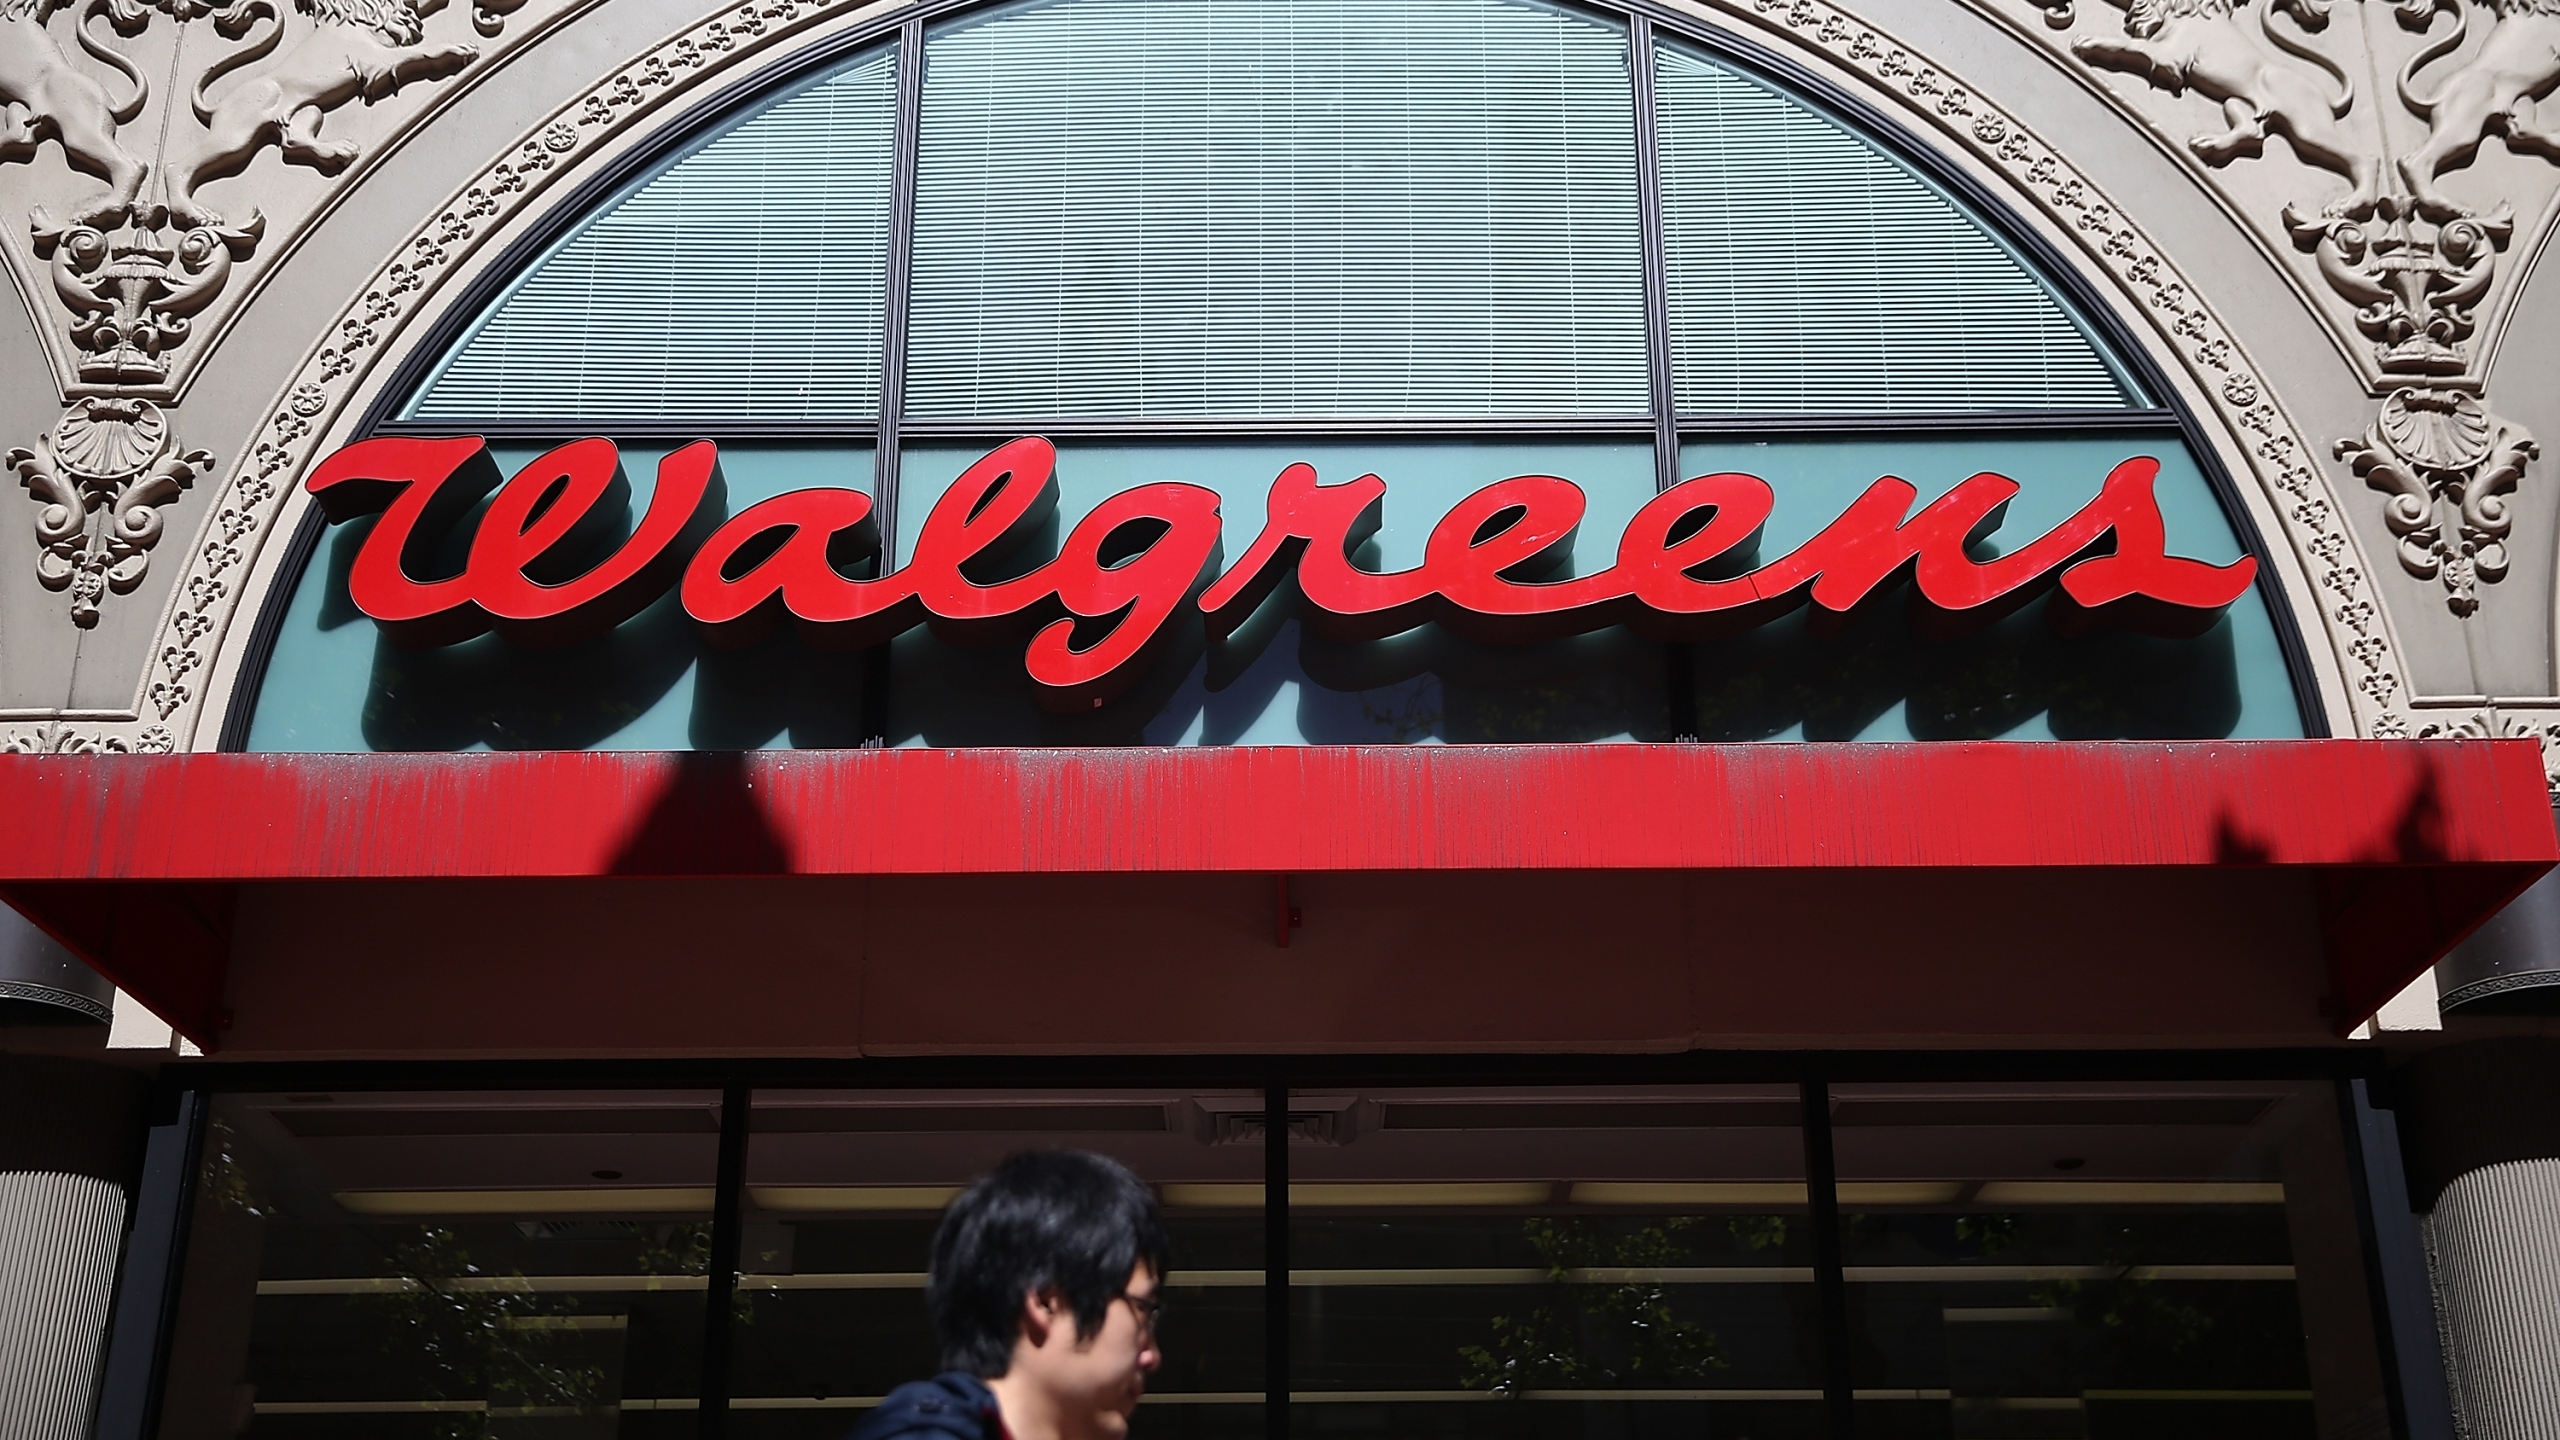 This file photo shows a pedestrian walking by a Walgreens store in San Francisco on April 5, 2016. (Justin Sullivan/Getty Images)